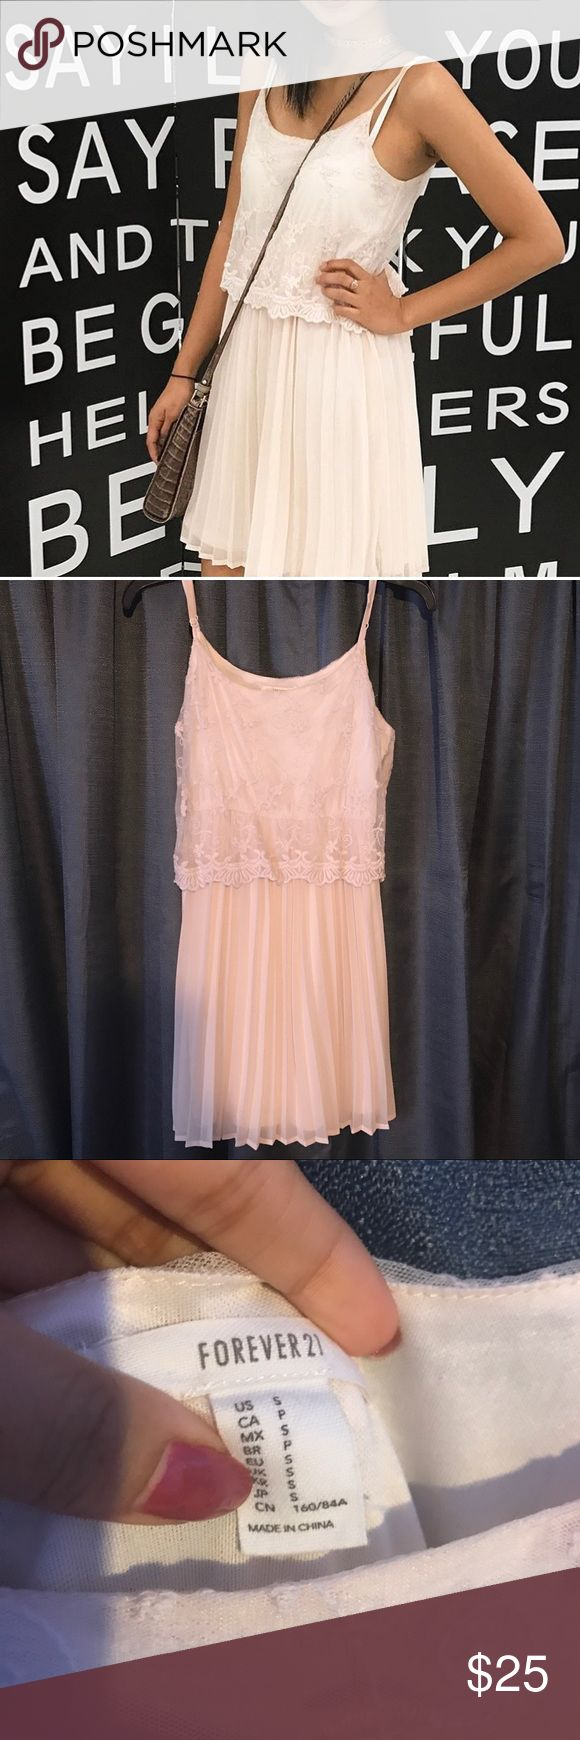 Vintage inspired lace dress Gorgeous dress for a summer night out on the town. Worn only a few times, has adjustable shoulder straps, and stops mid thigh. It is also an off white color. Forever 21 Dresses Midi